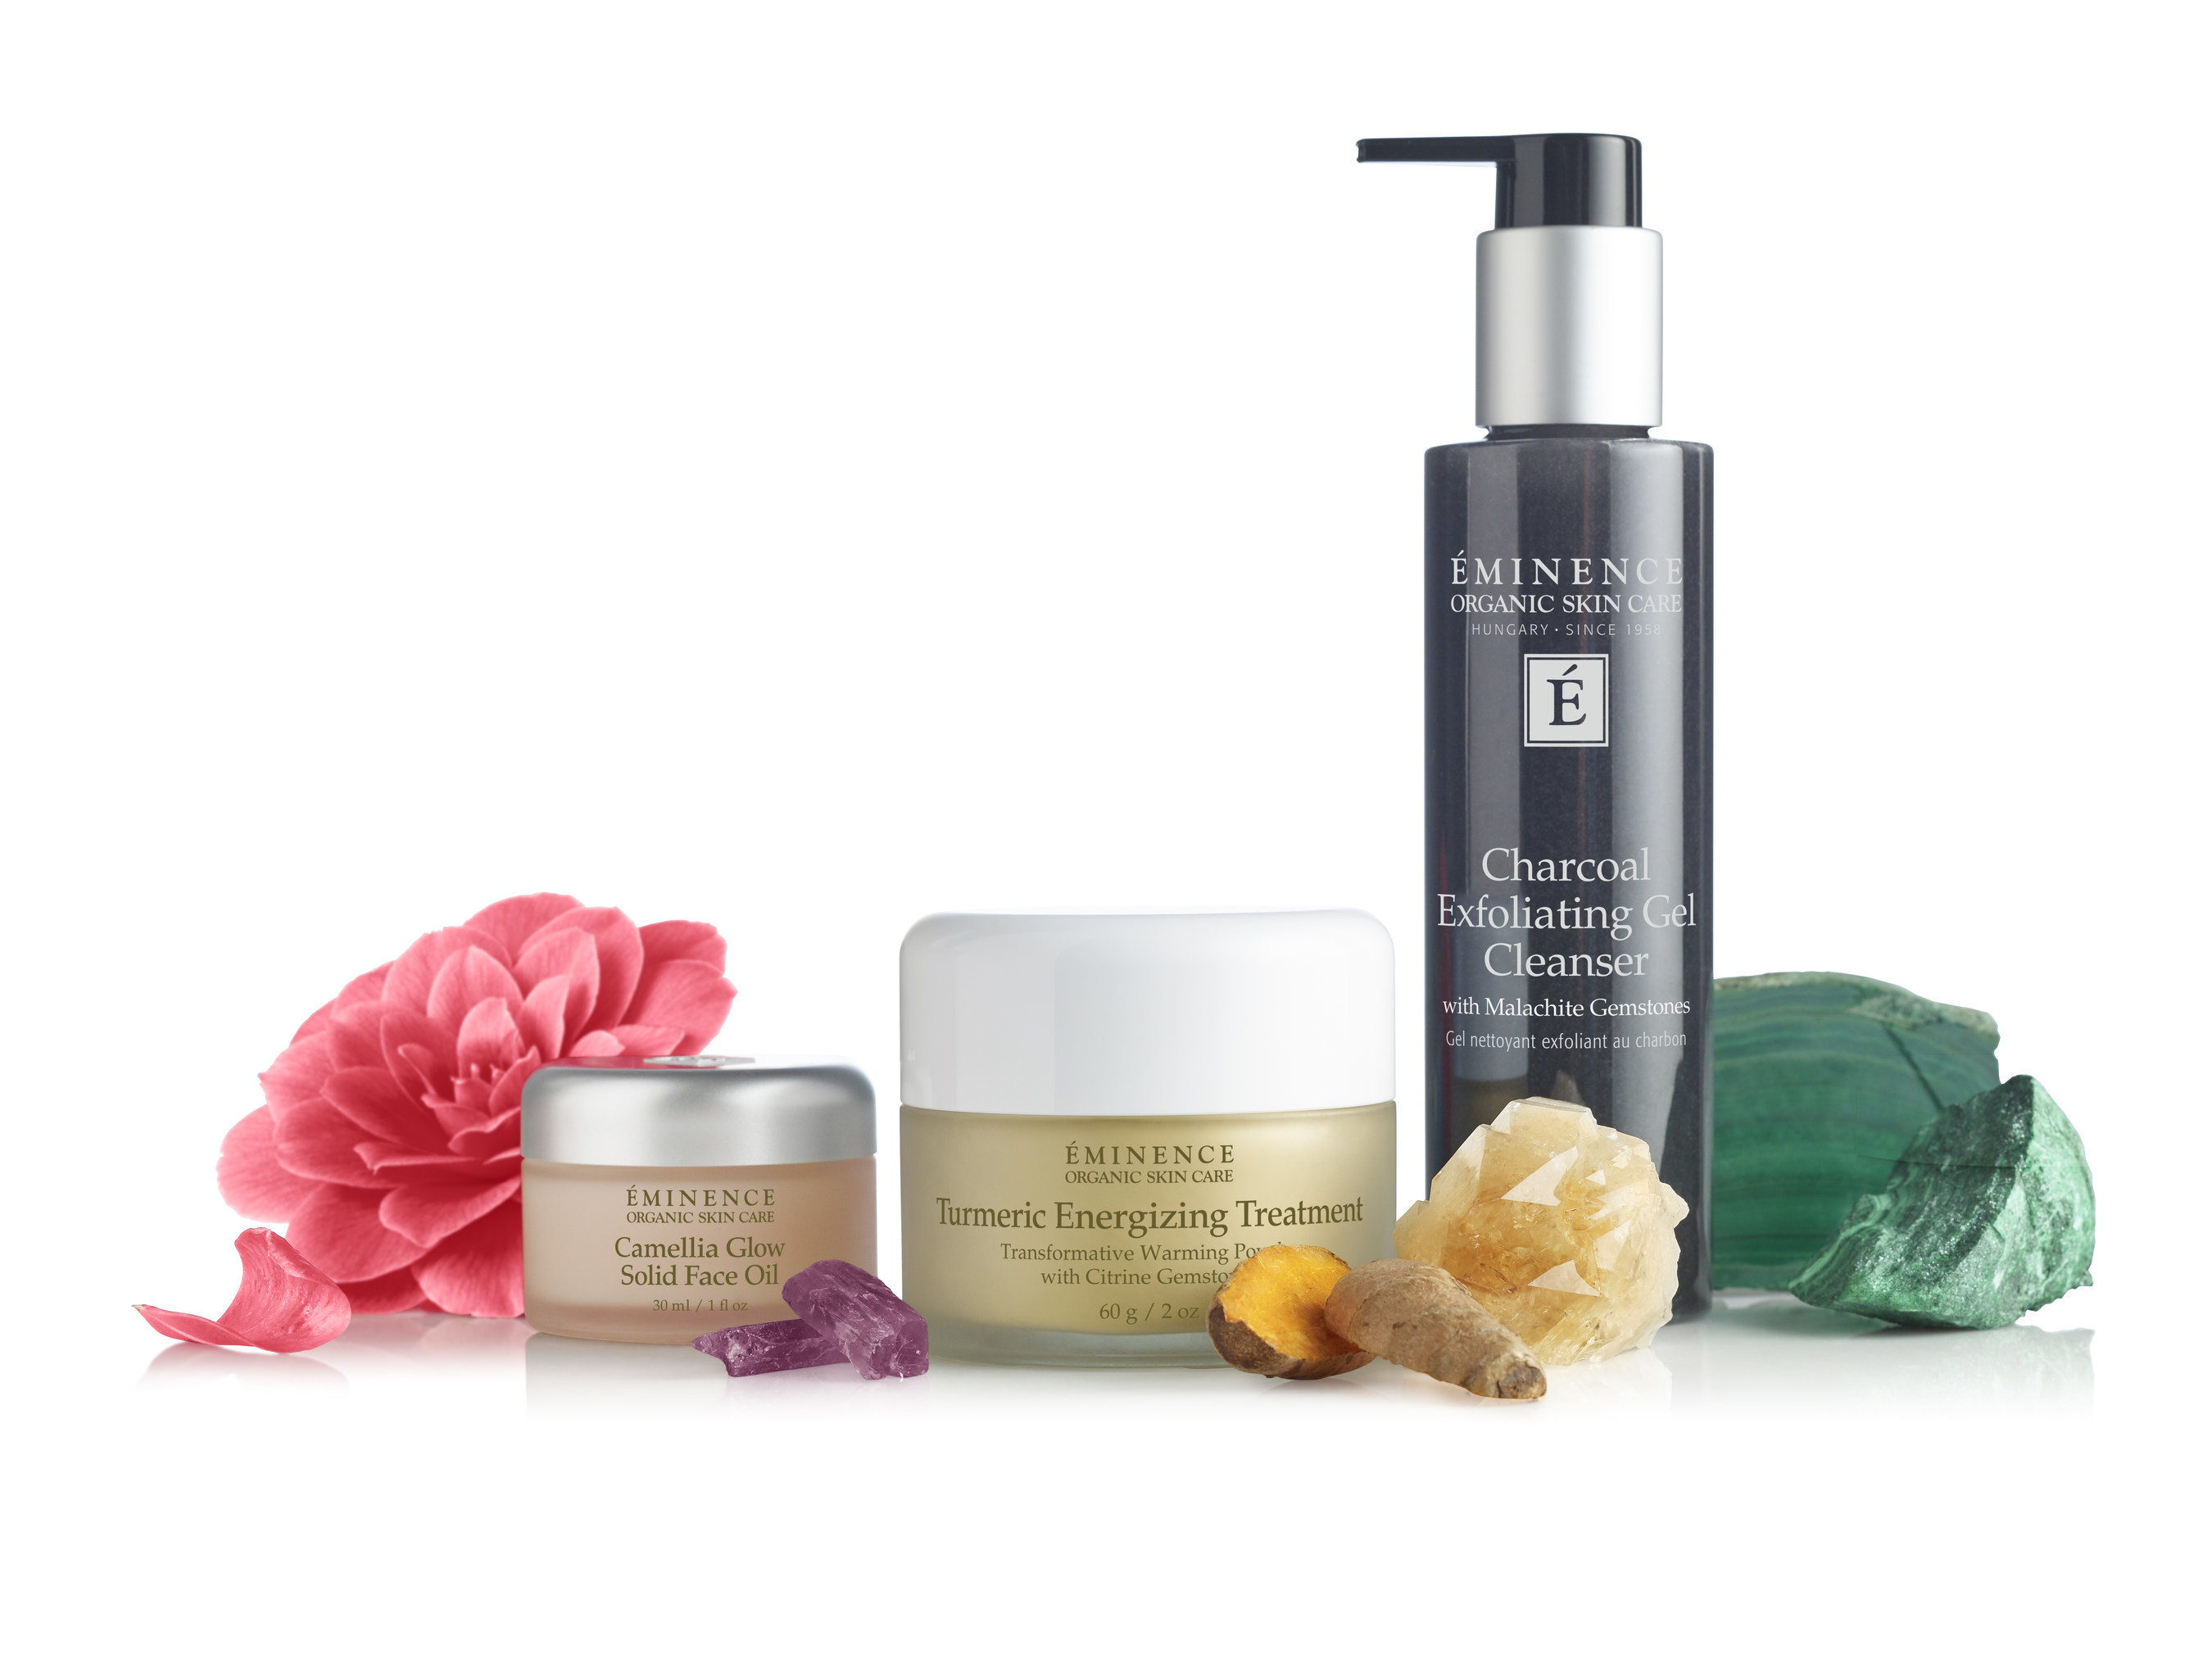 Eminence Organic Skincare Launches Gemstone Collection